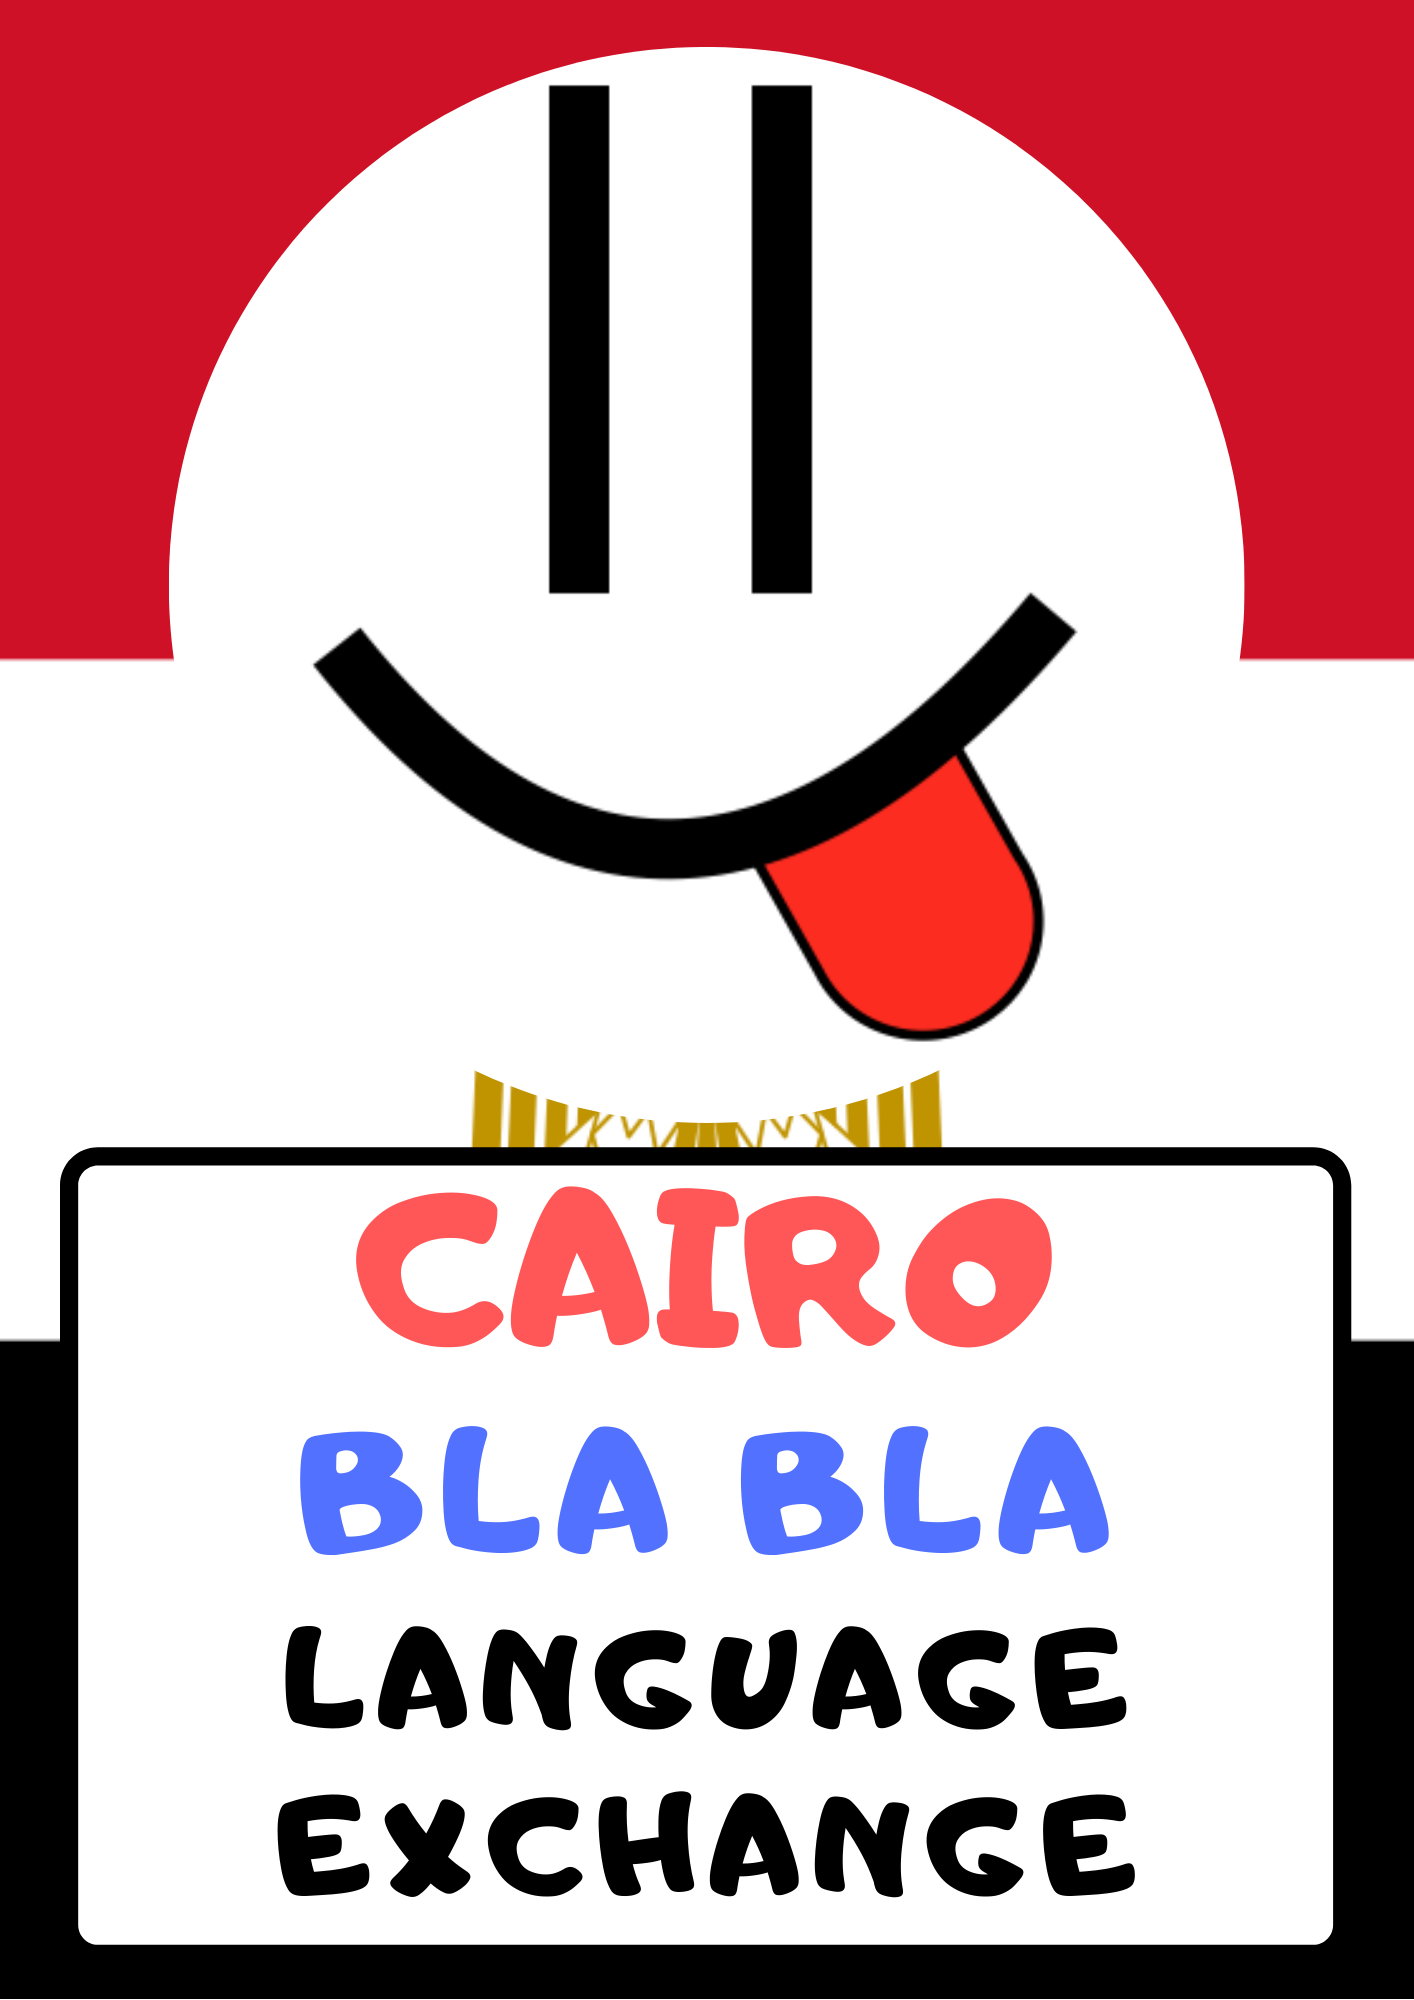 BRNO BLA BLA Language exchange - 2019-12